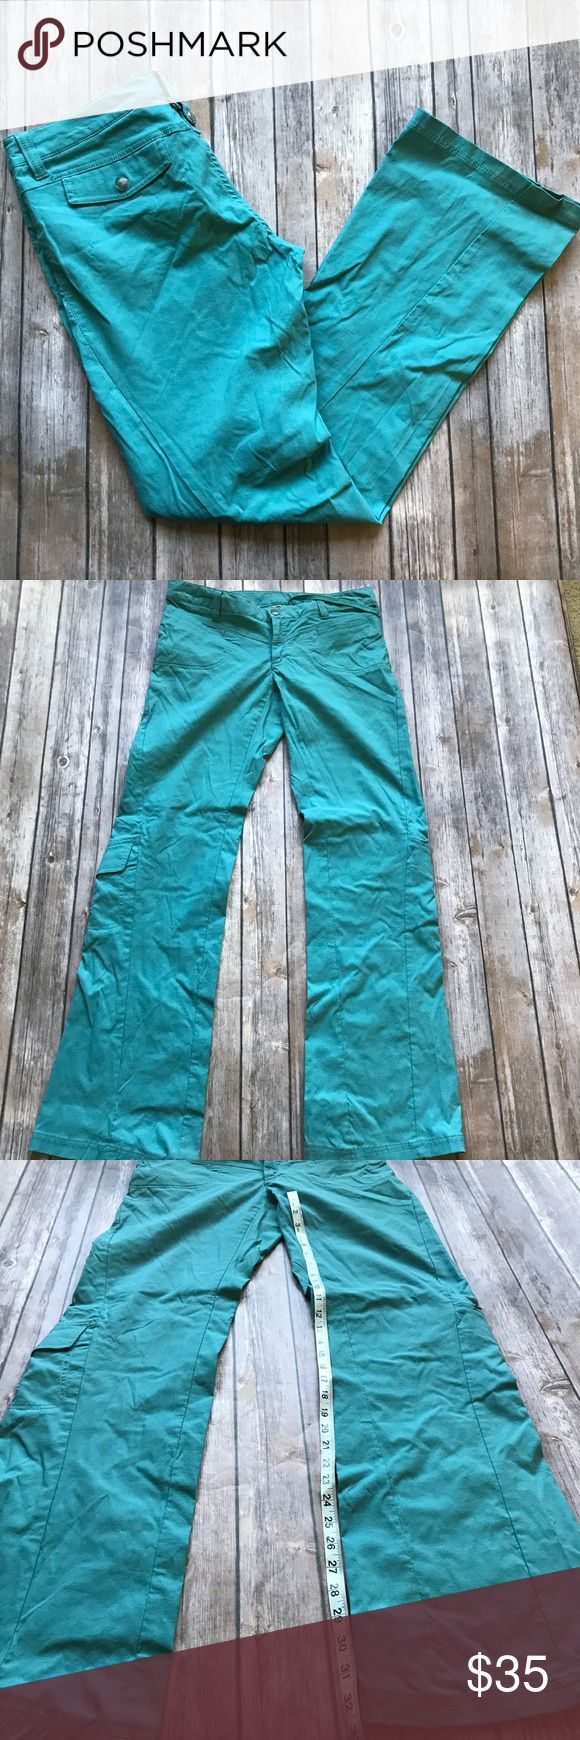 Athleta Ski Pants Size 10 Tall Great condition turquoise ski pants- size 10 Tall slightly flared from Athleta. 💠From a clean and smoke free home!💠 Add to a bundle to get a private discount💠Free Gift with $25+ Purchase 💠 Discount ALWAYS Available on 2+ items💠 No trades, holds, modeling or transactions off of Poshmark.💠 Athleta Pants